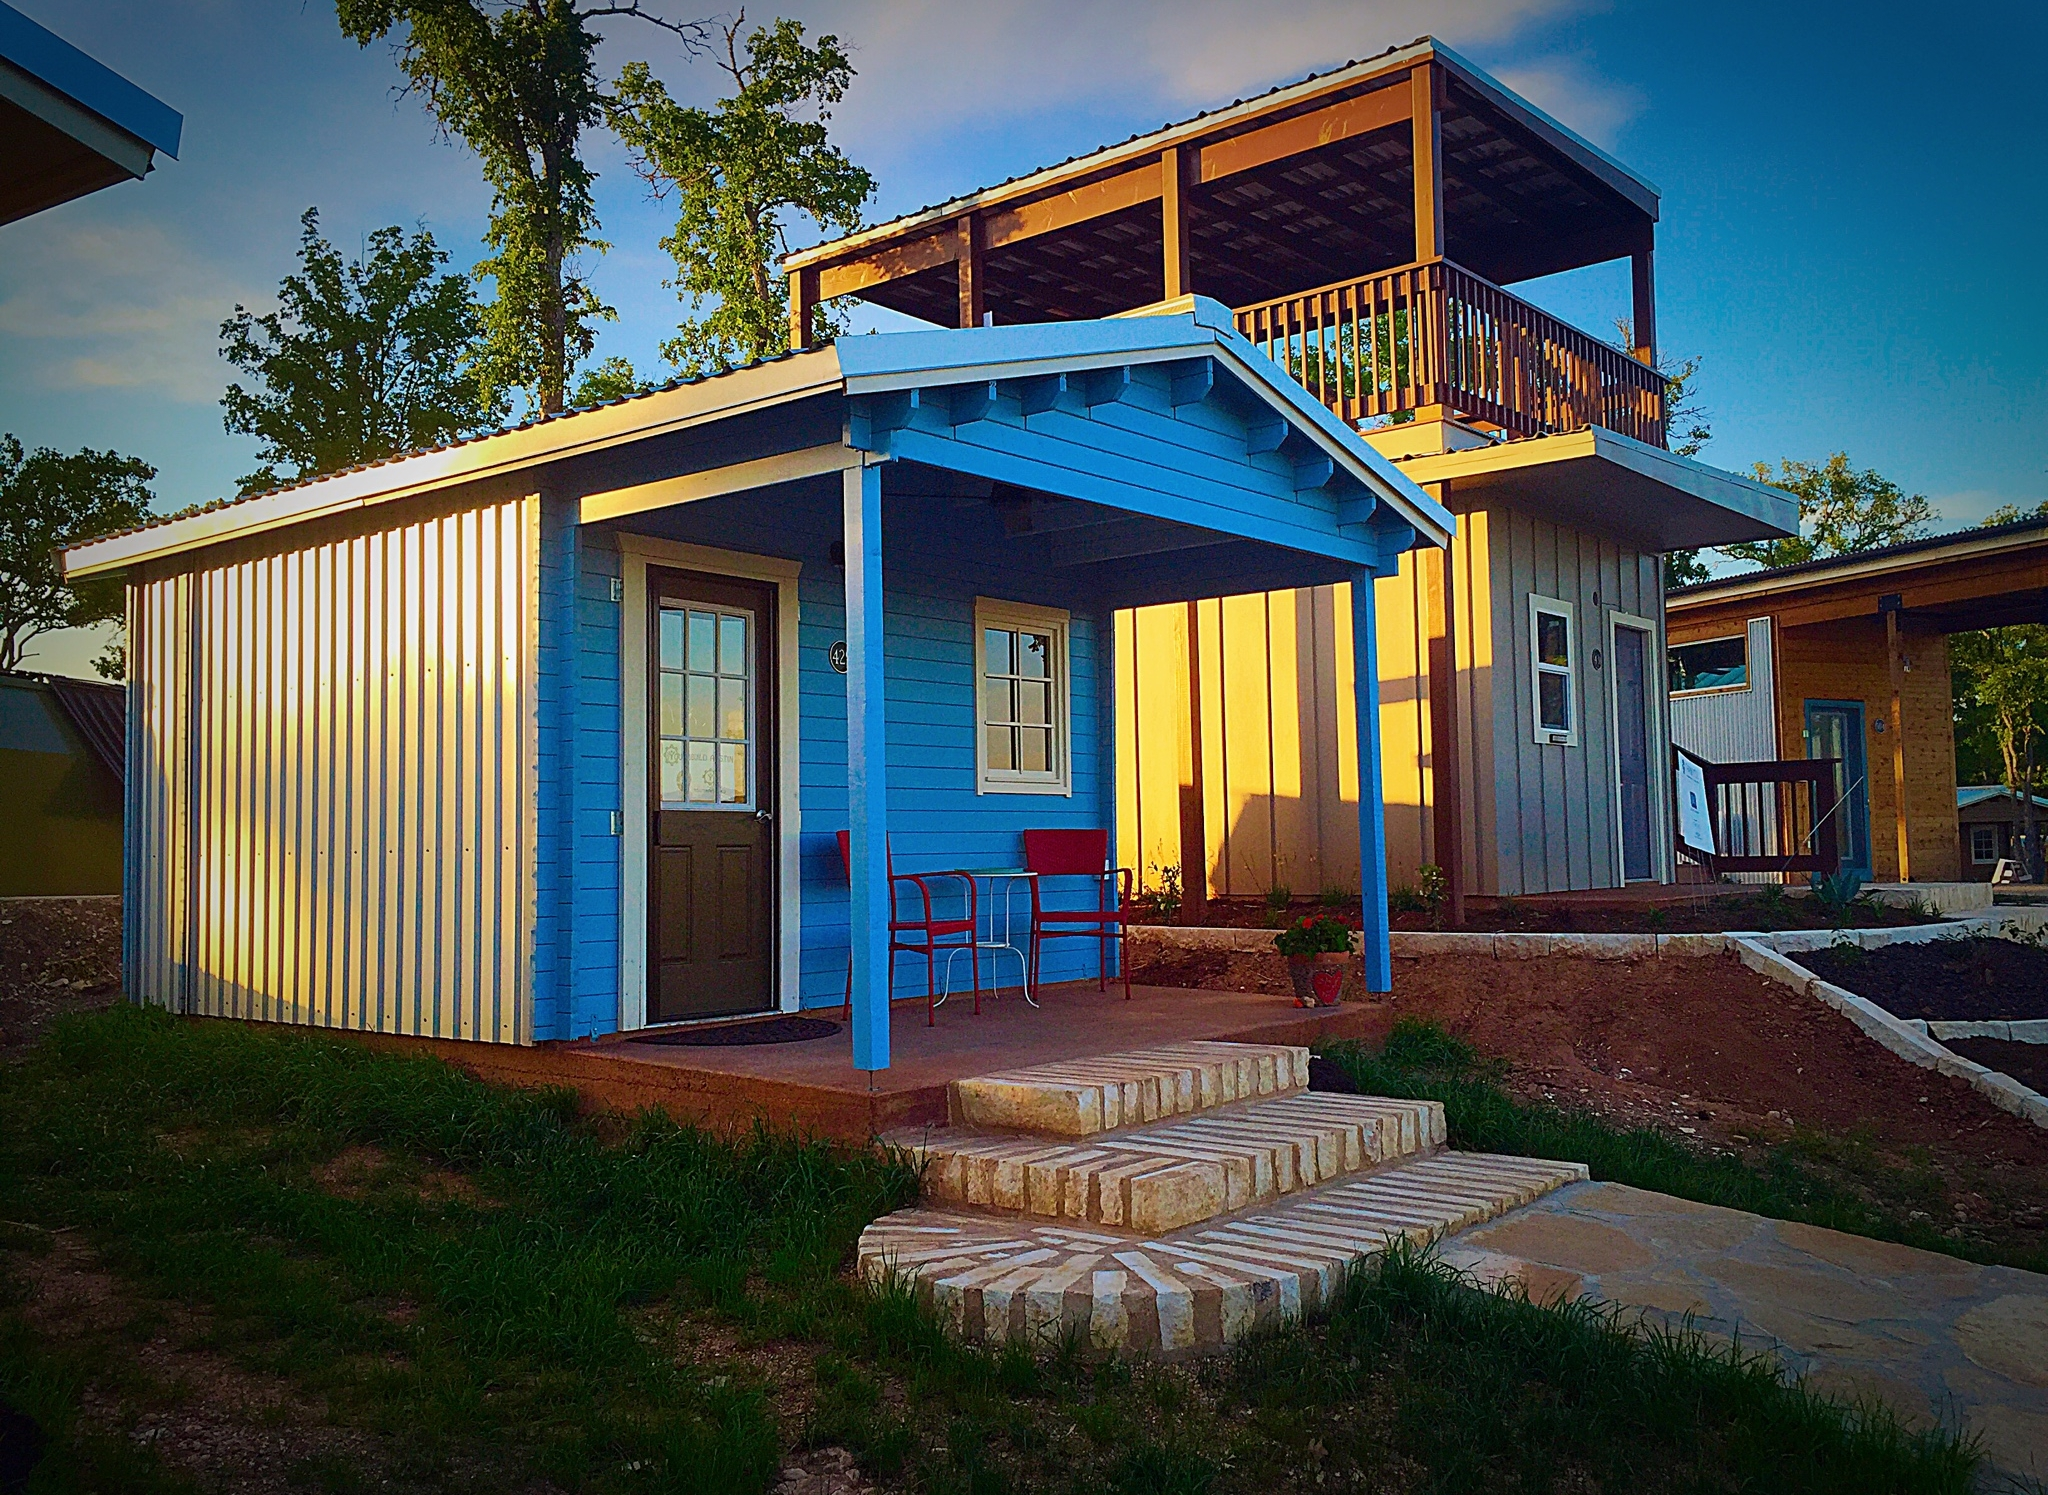 Community First! Village- tiny home village for formerly homeless